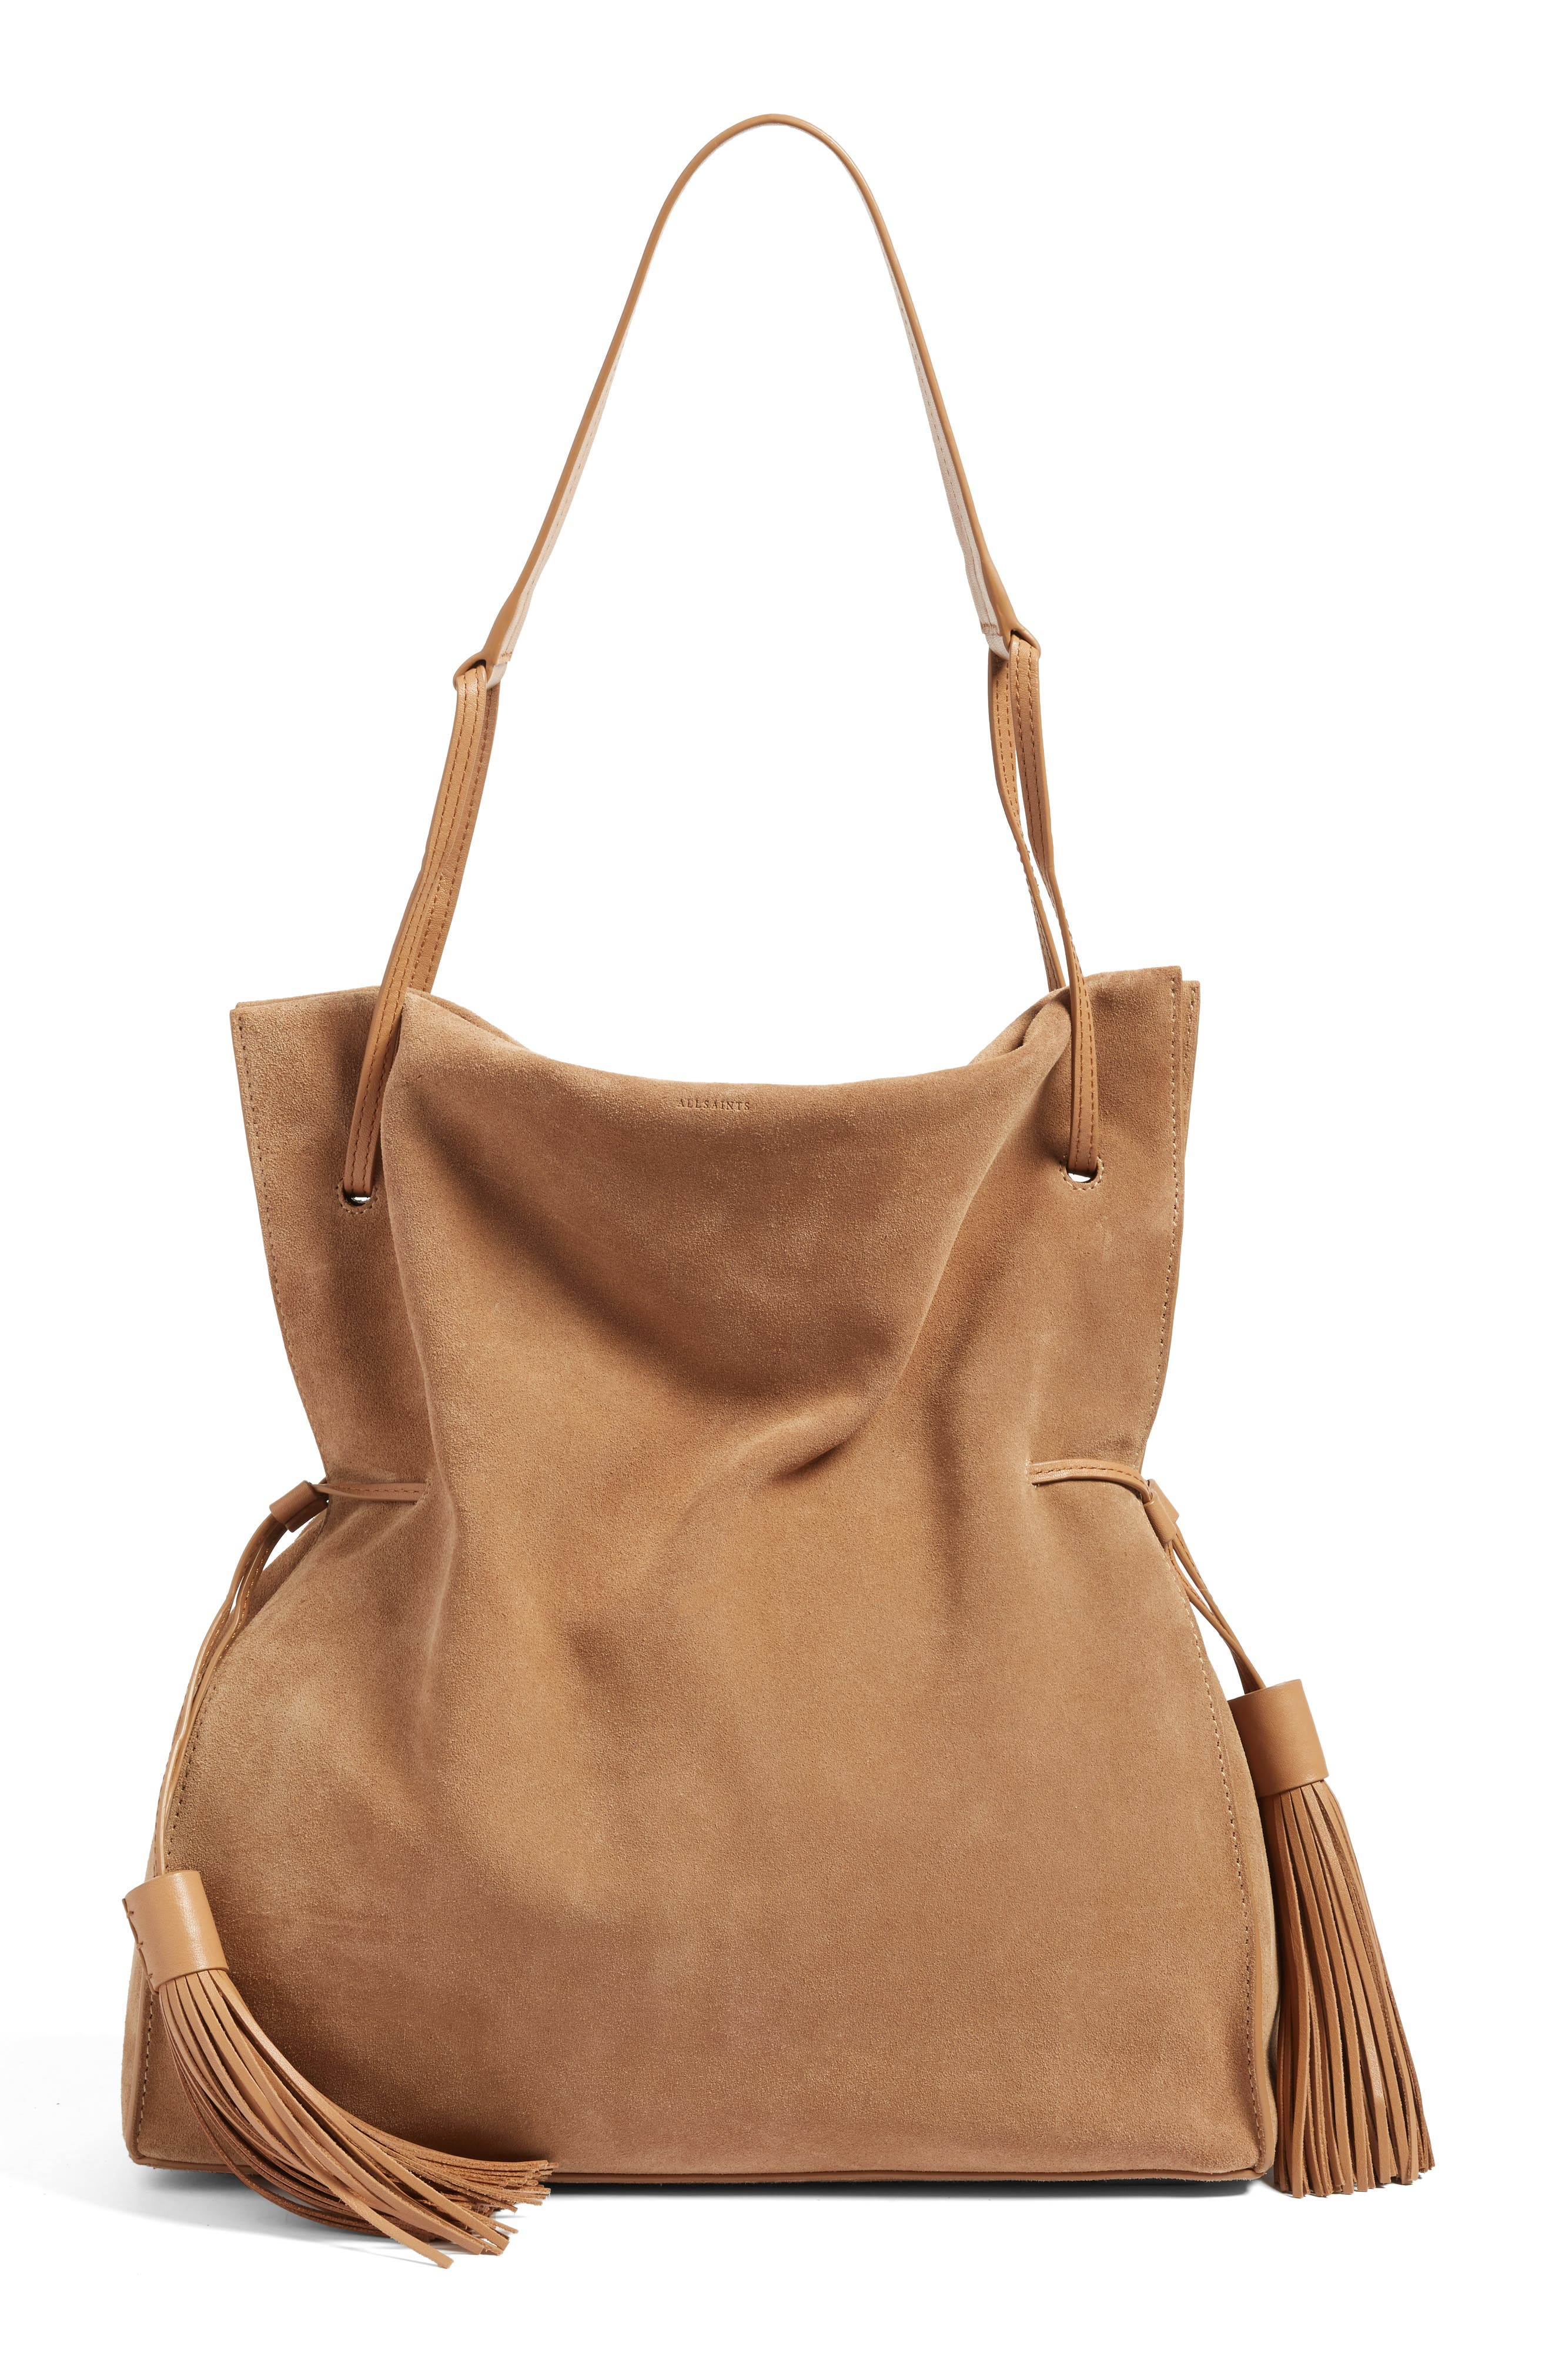 ALLSAINTS 'Freedom' Suede Hobo